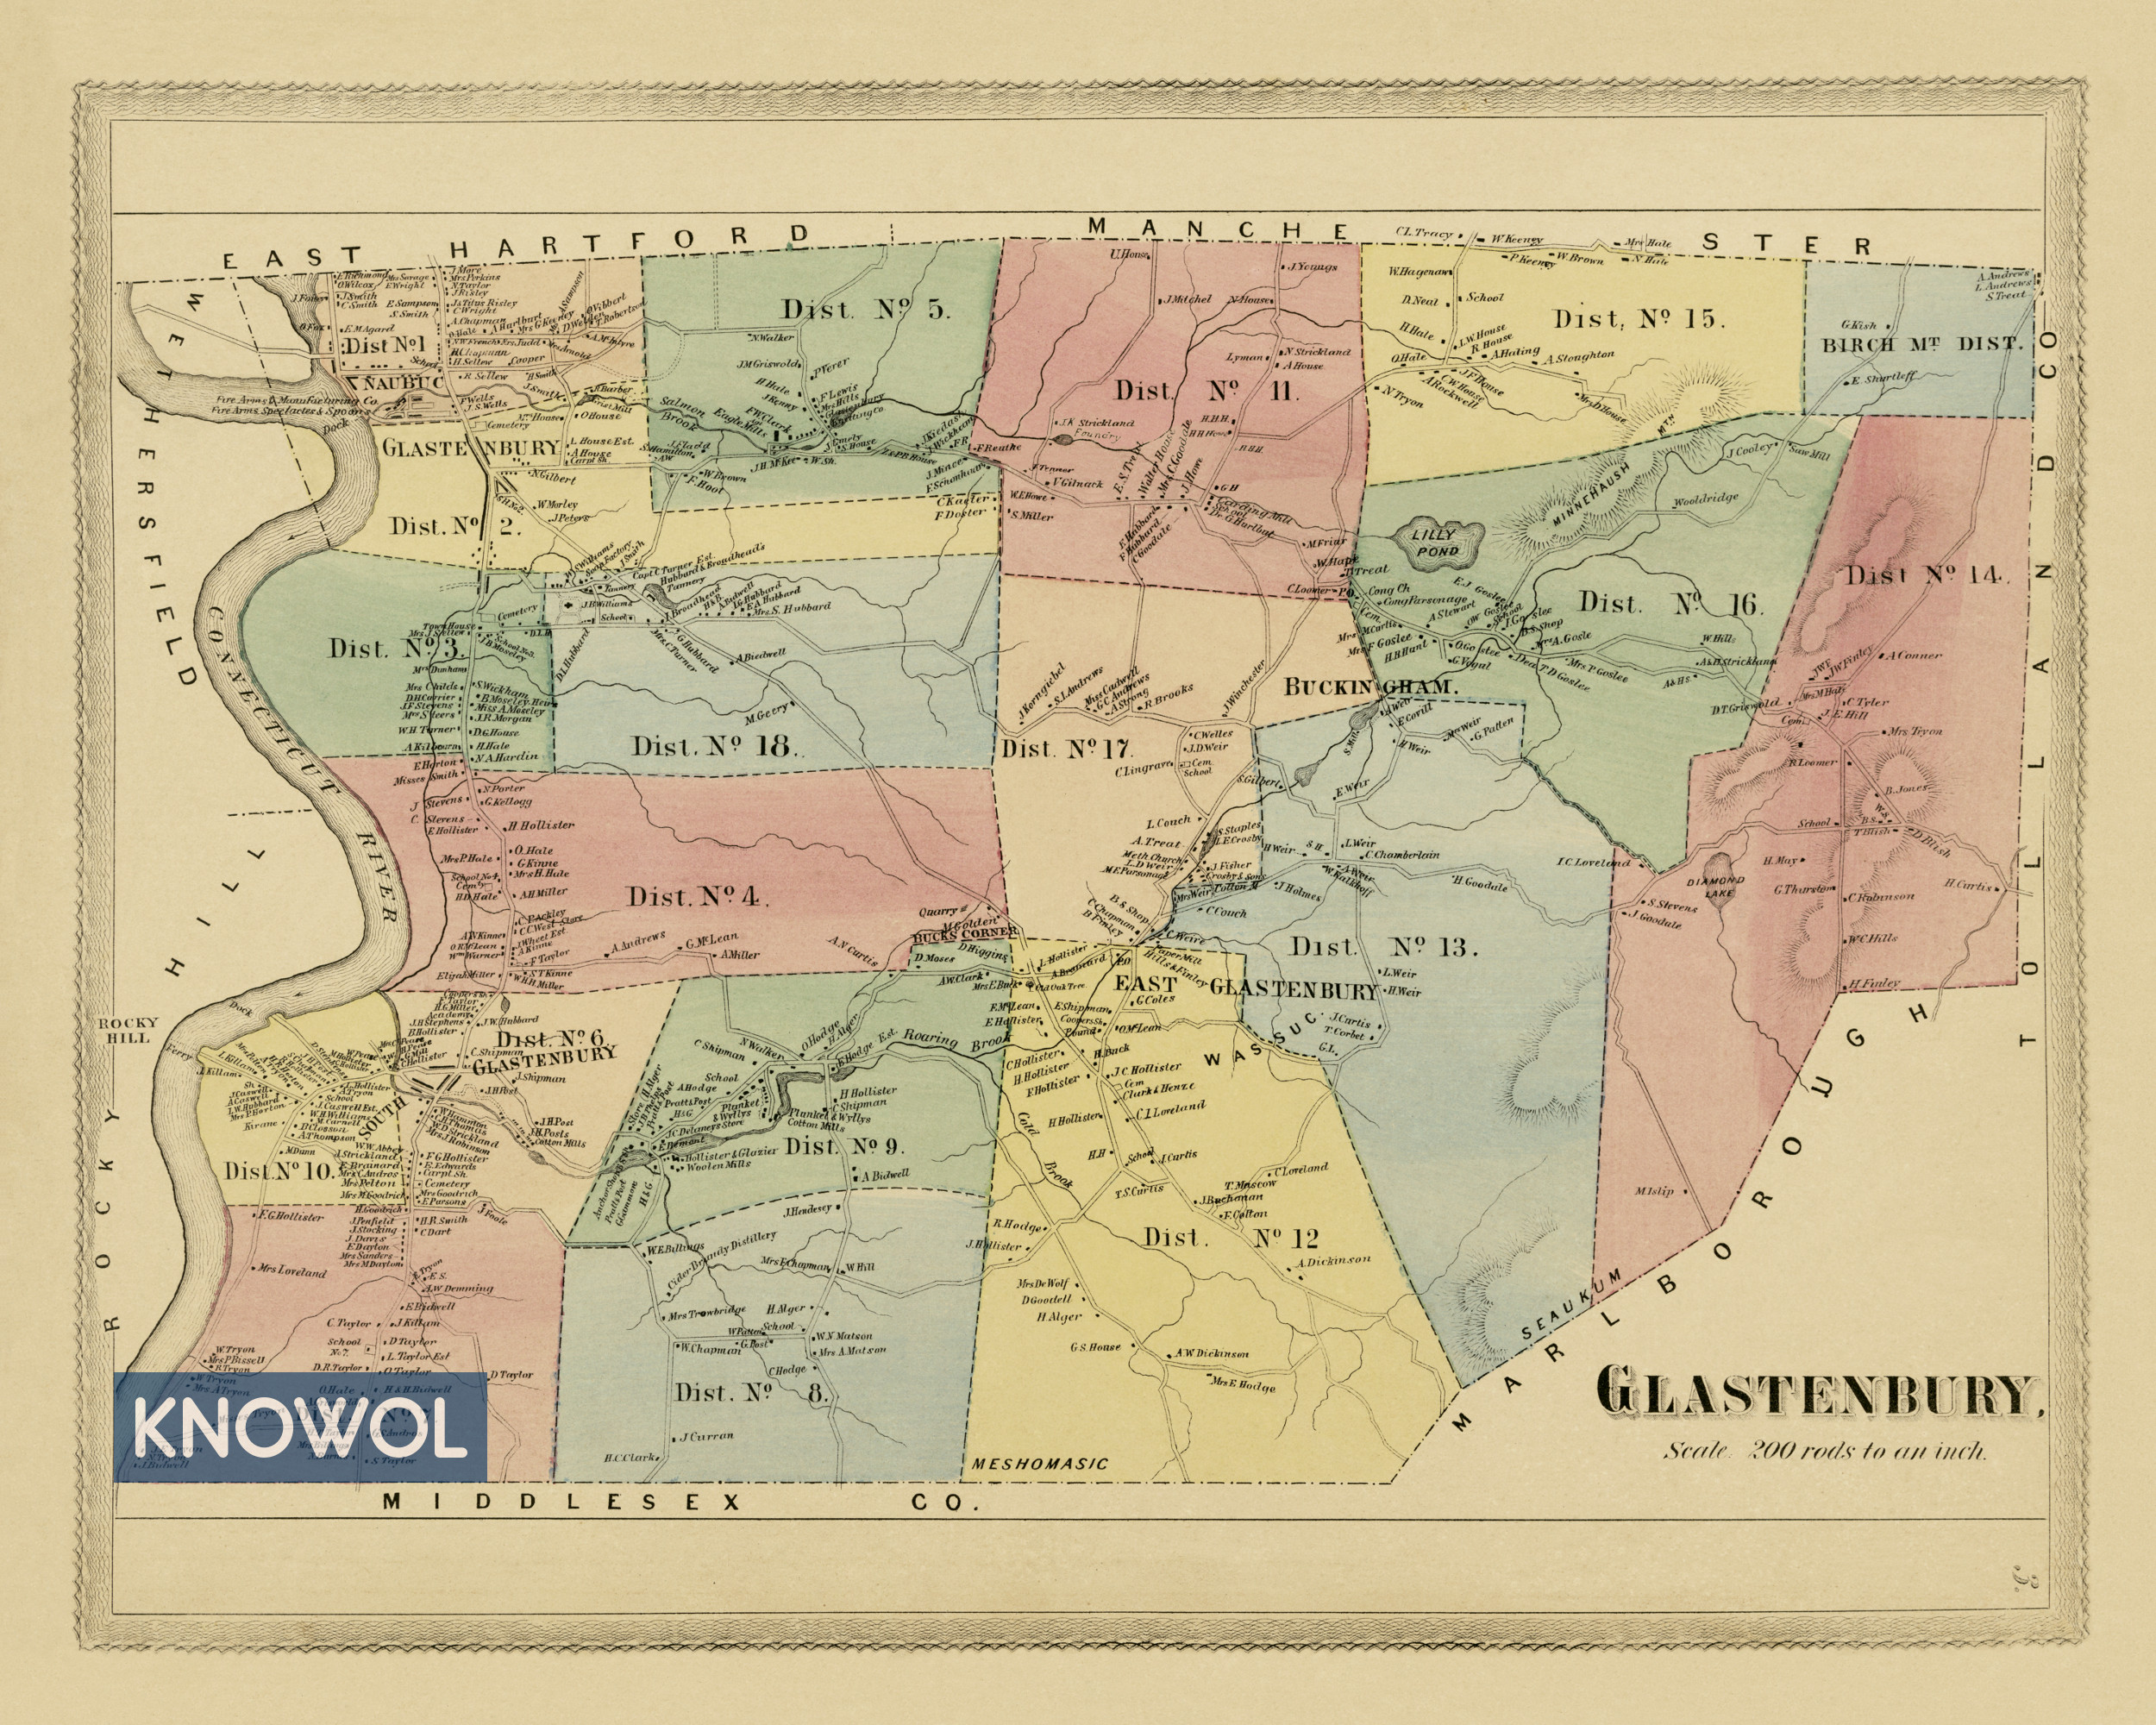 Town Cheshire Ct Map